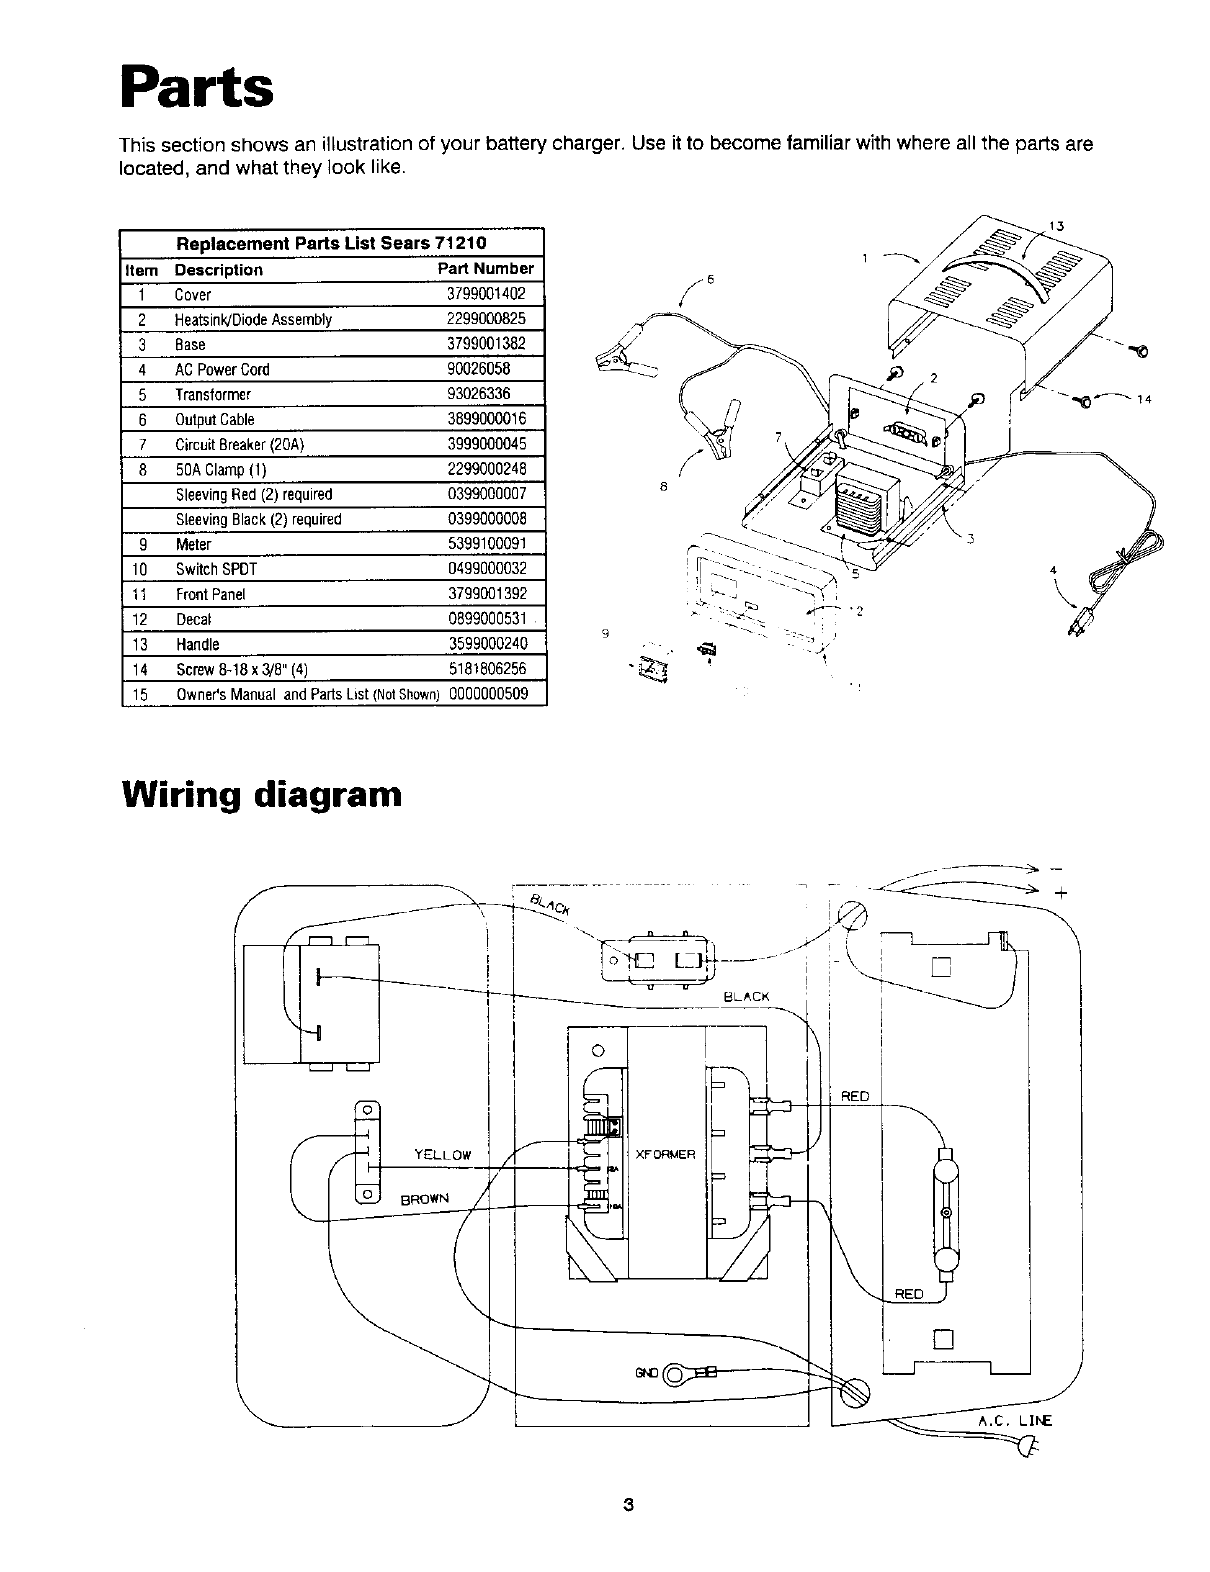 Page 4 of Sears Battery Charger 200.7121 User Guide